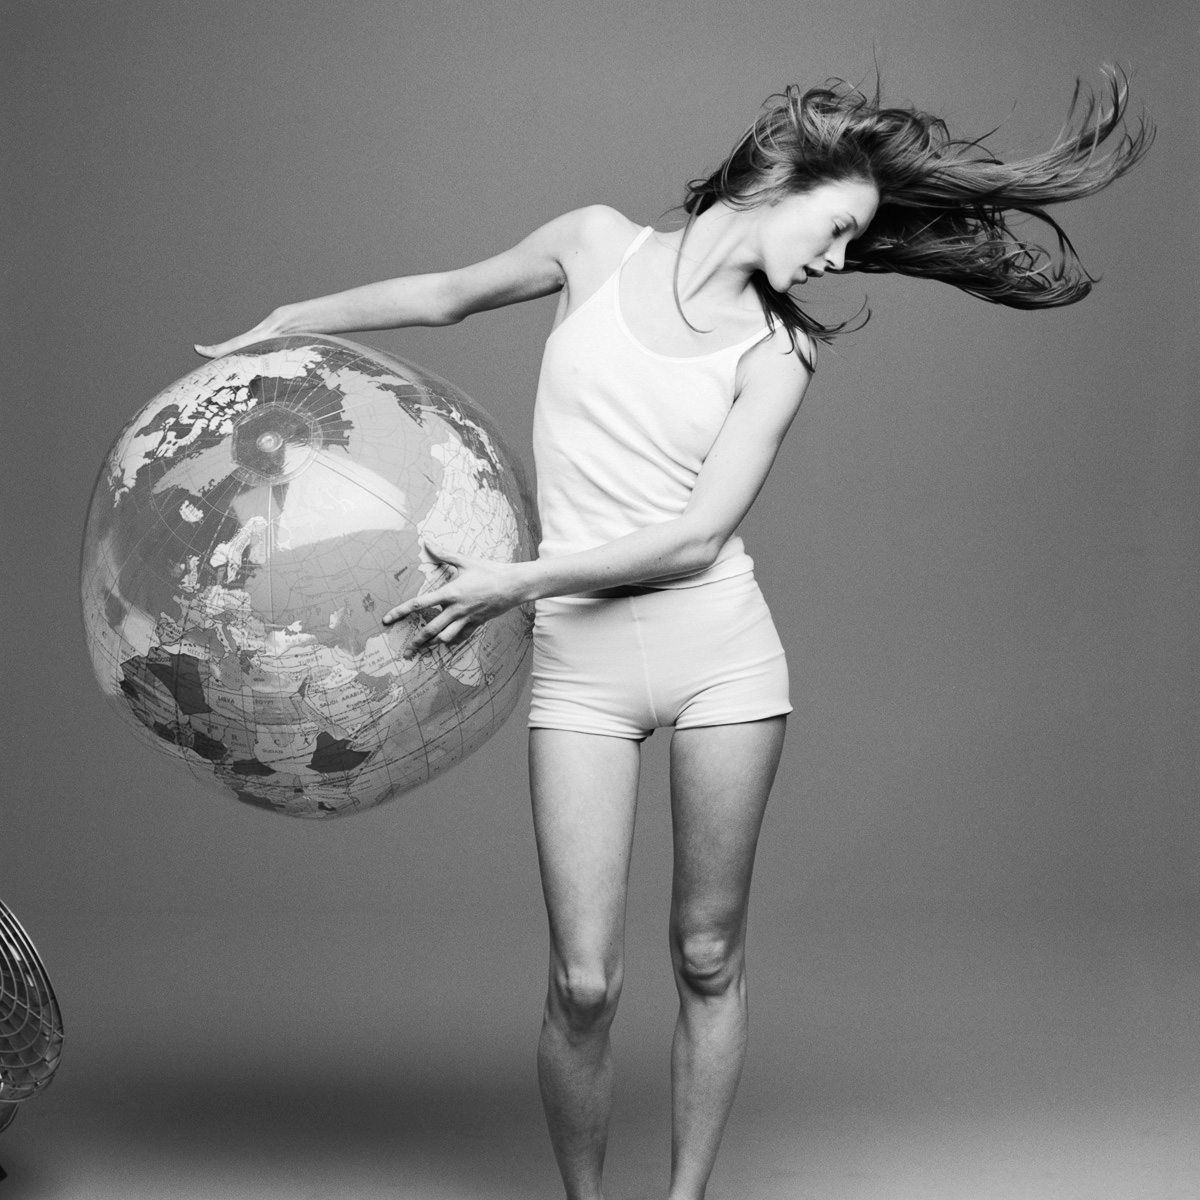 kate+moss+with+the+world+by+patrick+andersson.jpeg